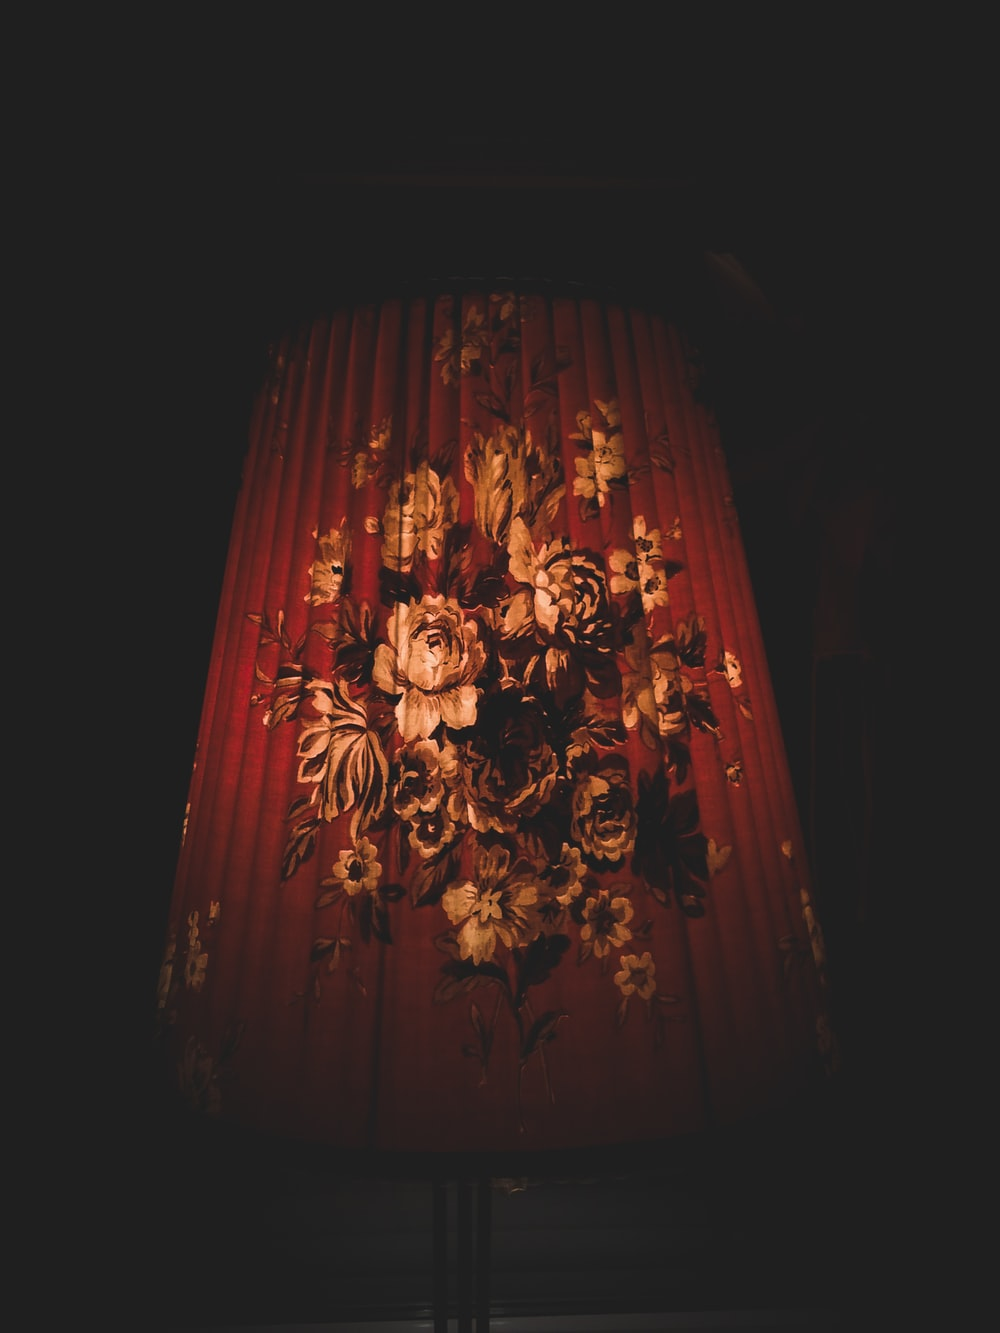 closeup photo of red and brown floral lampshade